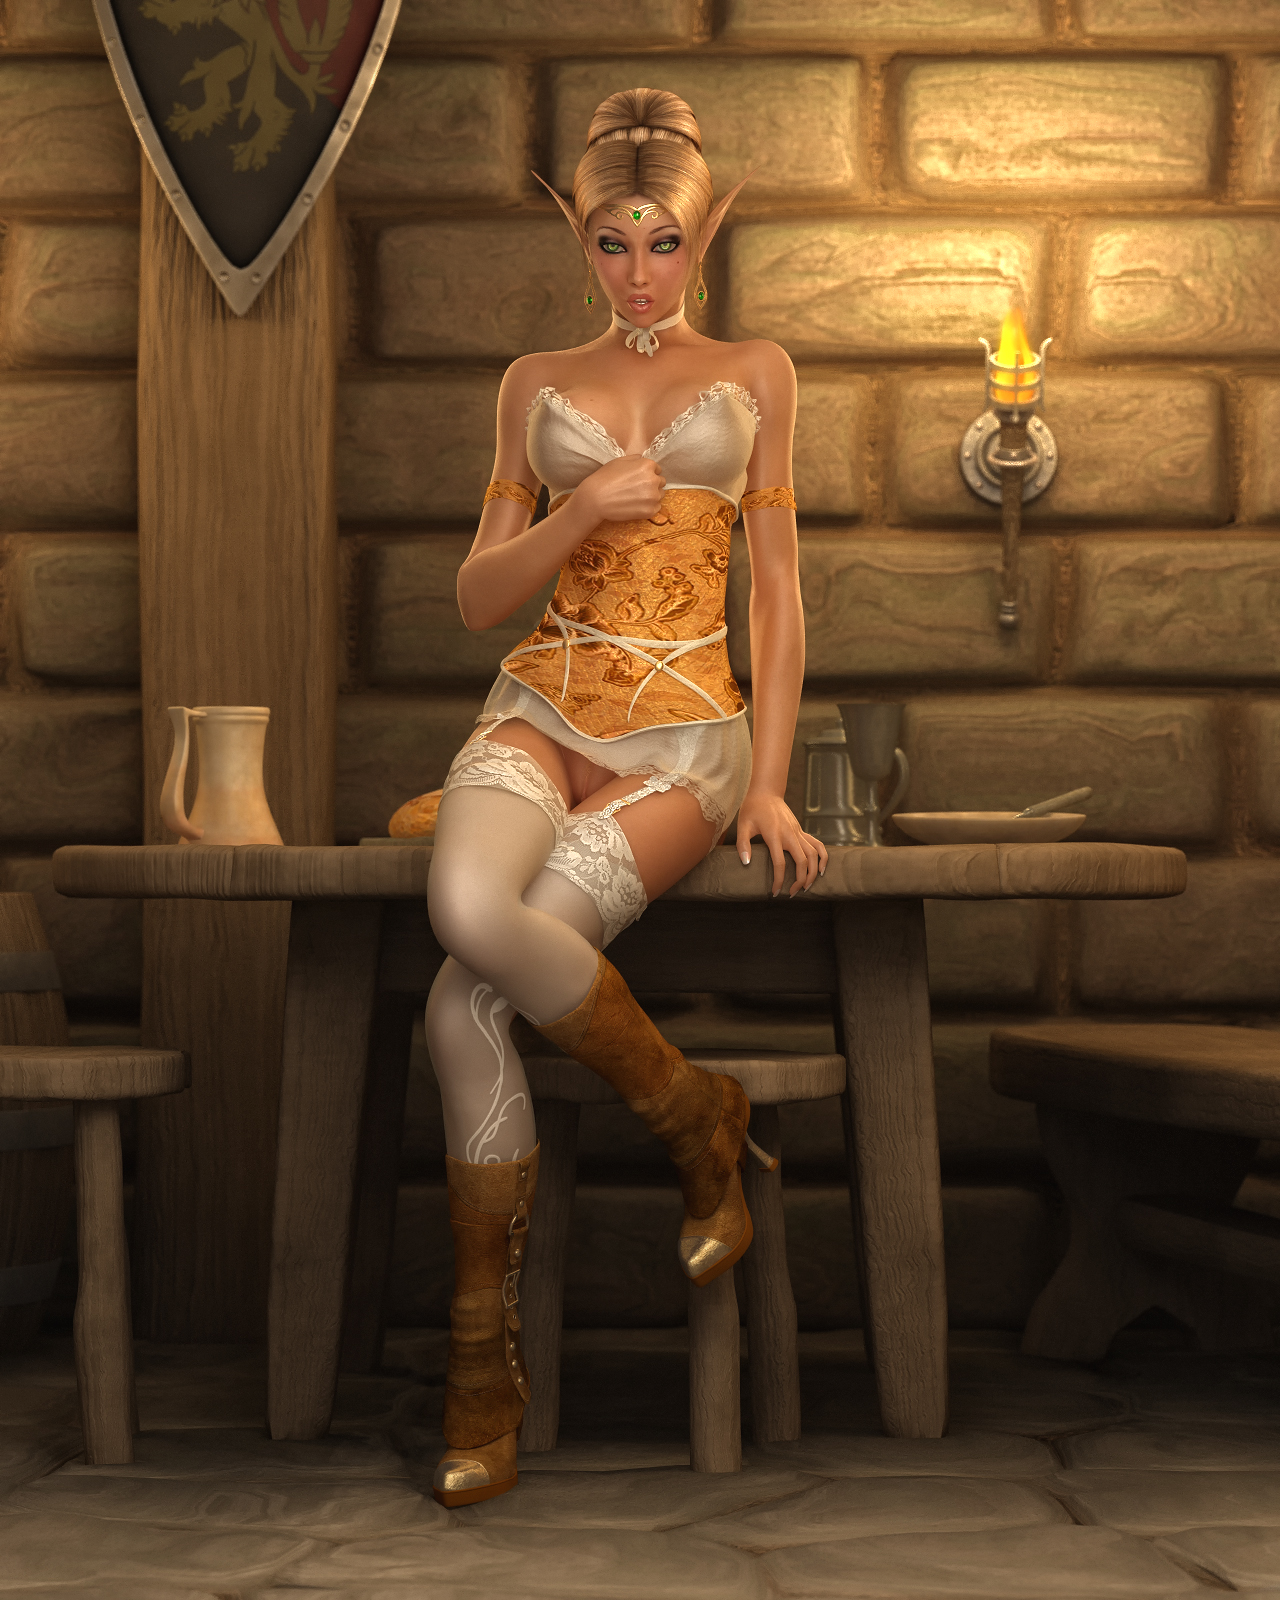 Medieval fantasy world elves hentai erotic pictures